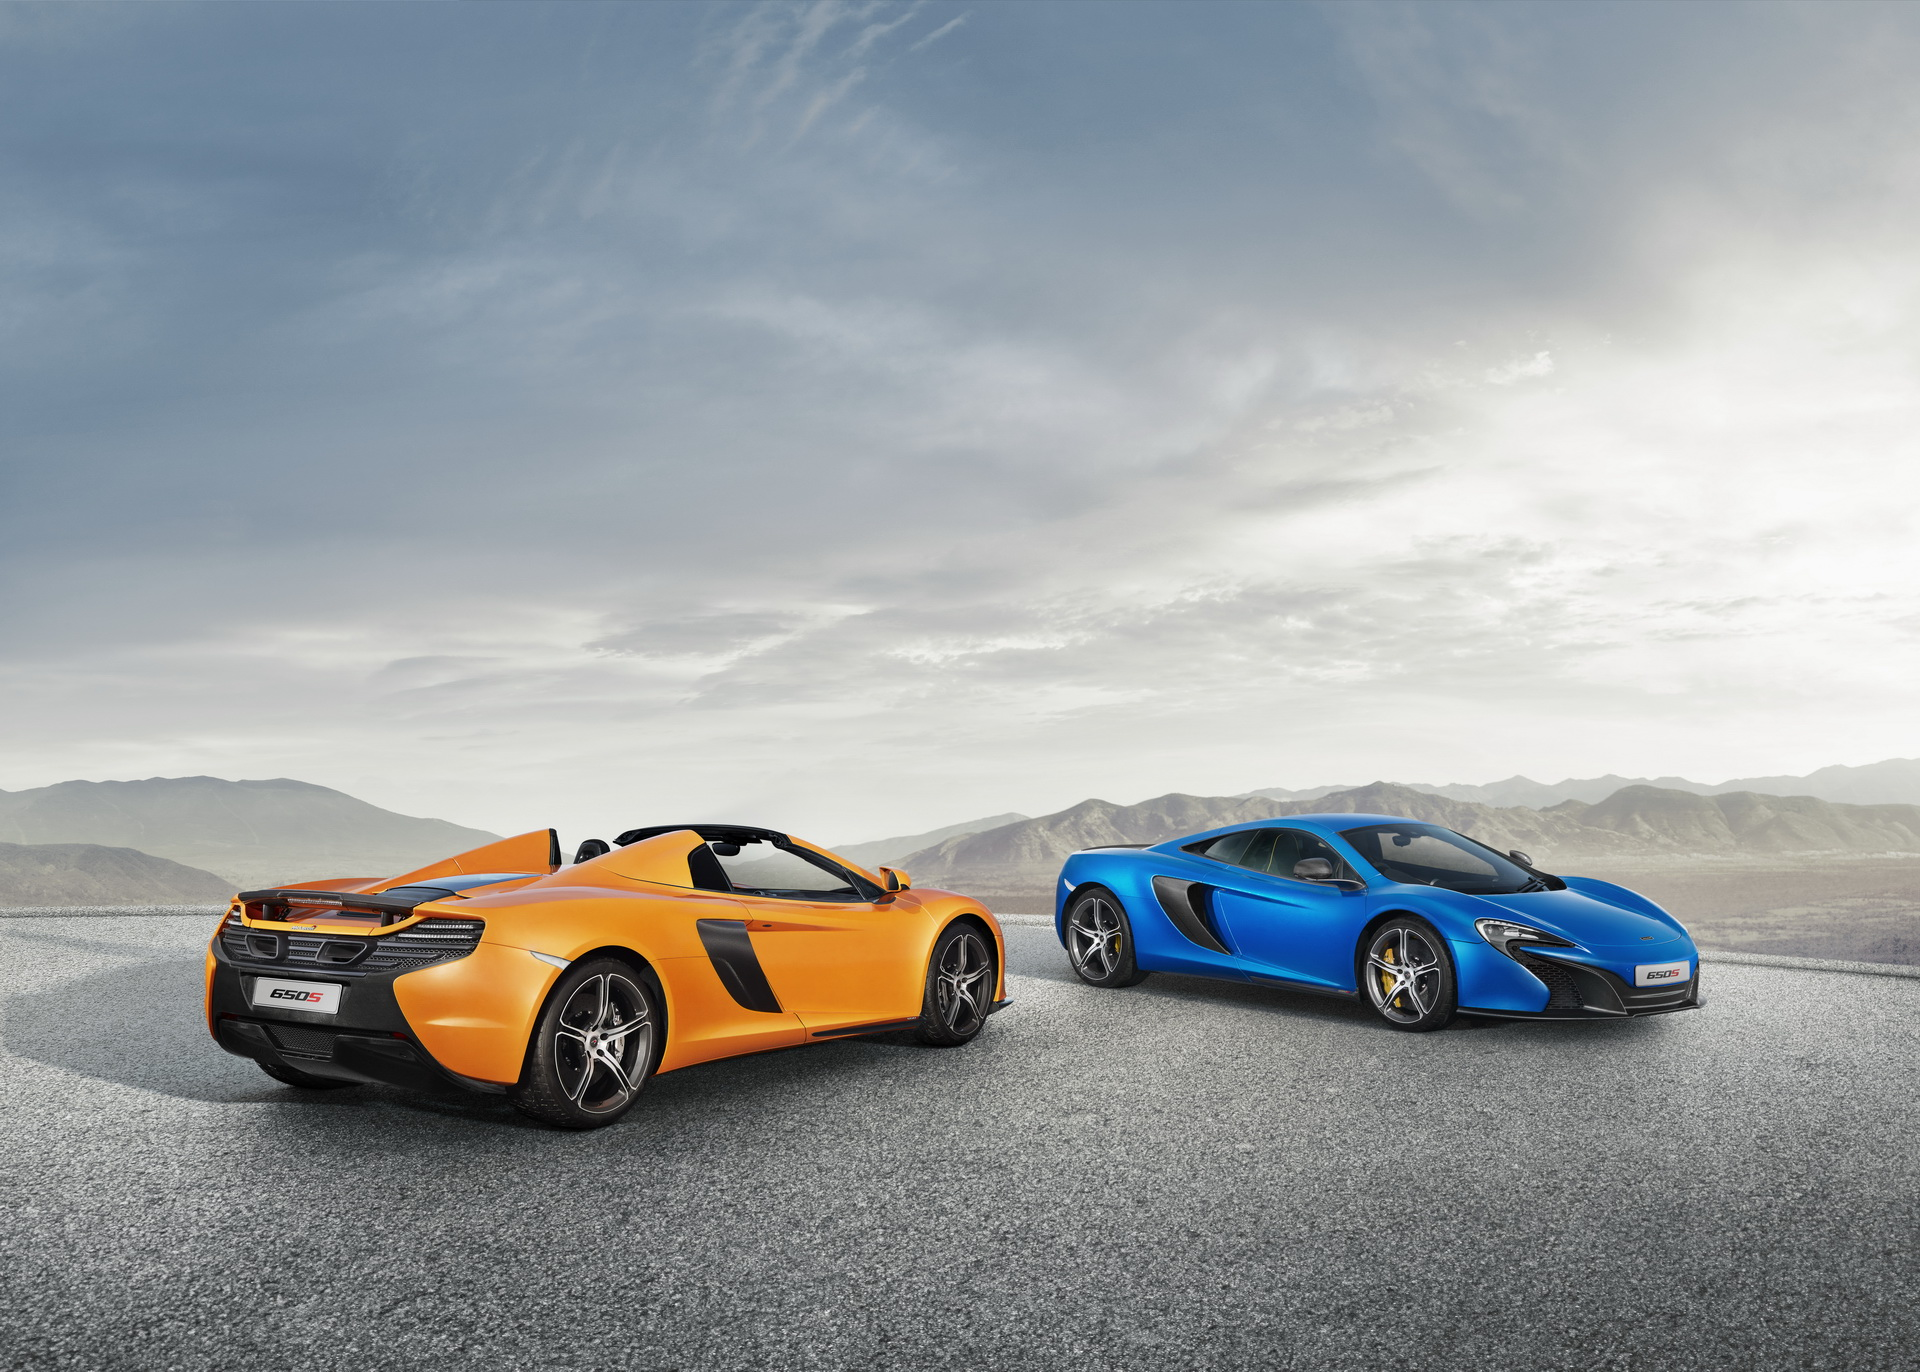 McLaren 650S dials up performance and excitement 1920x1372